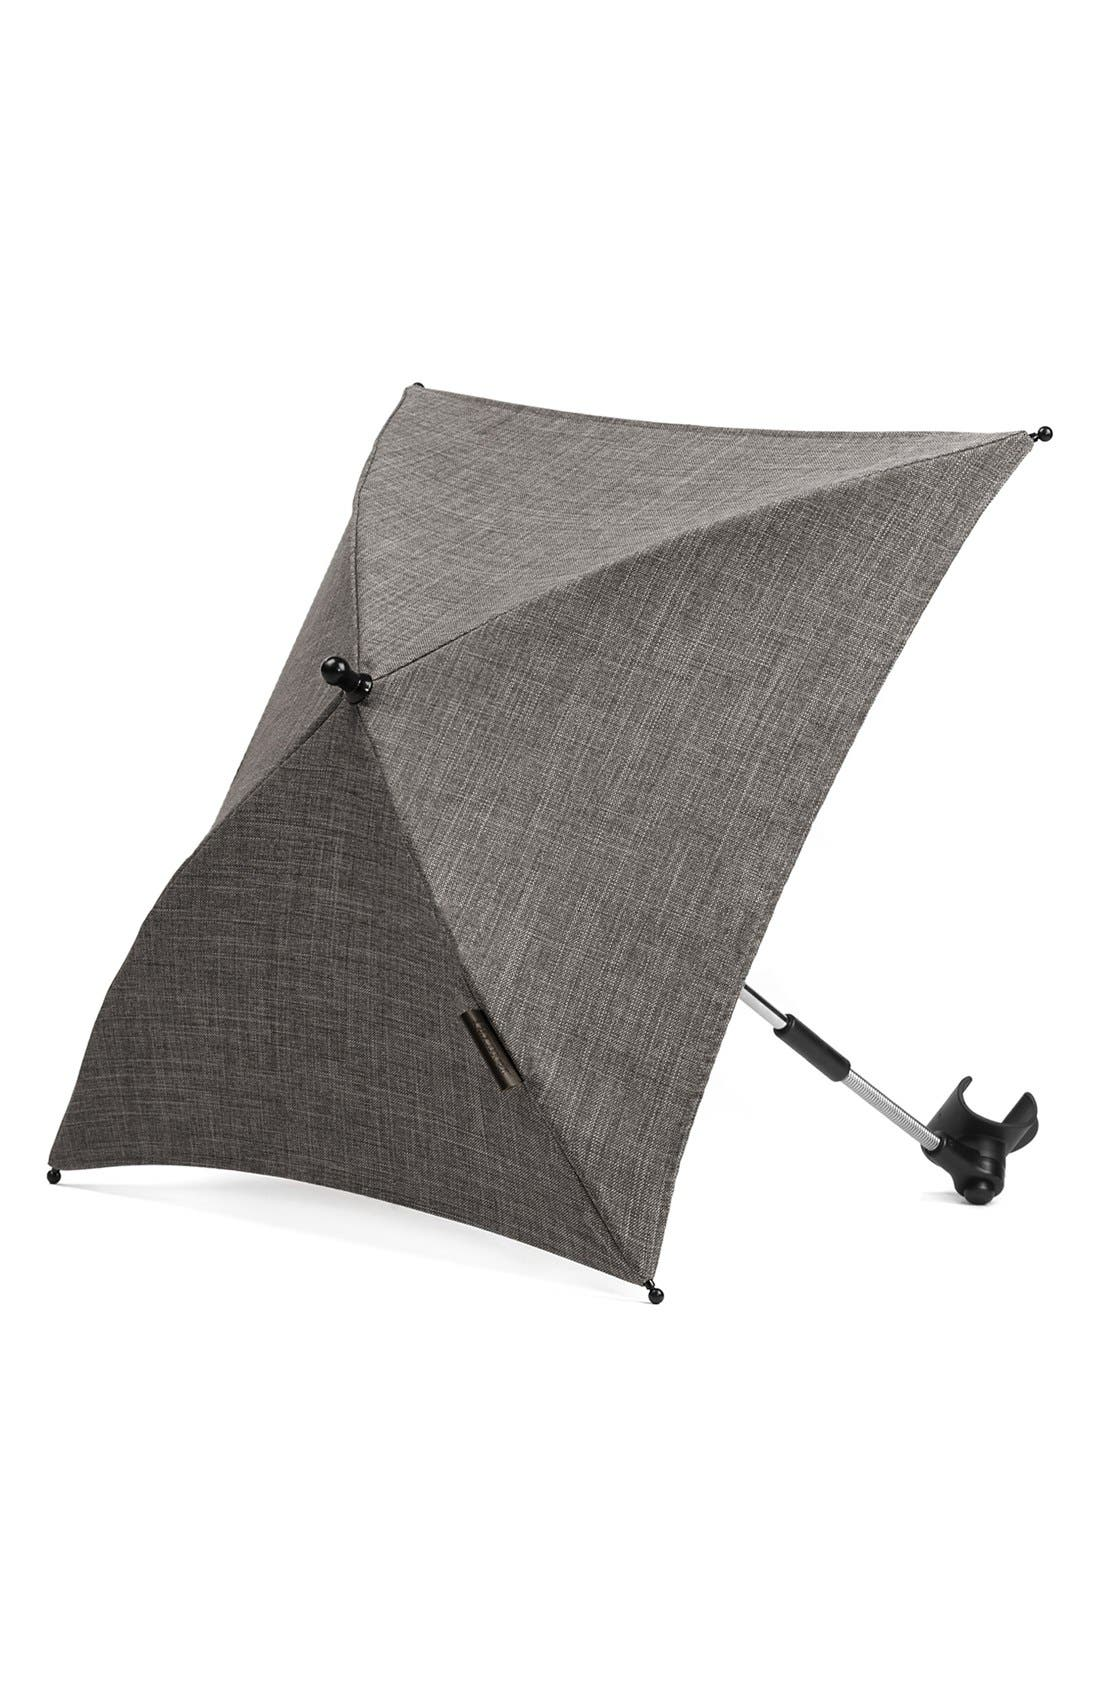 'Igo - Farmer Earth' Stroller Umbrella,                             Main thumbnail 1, color,                             Brown